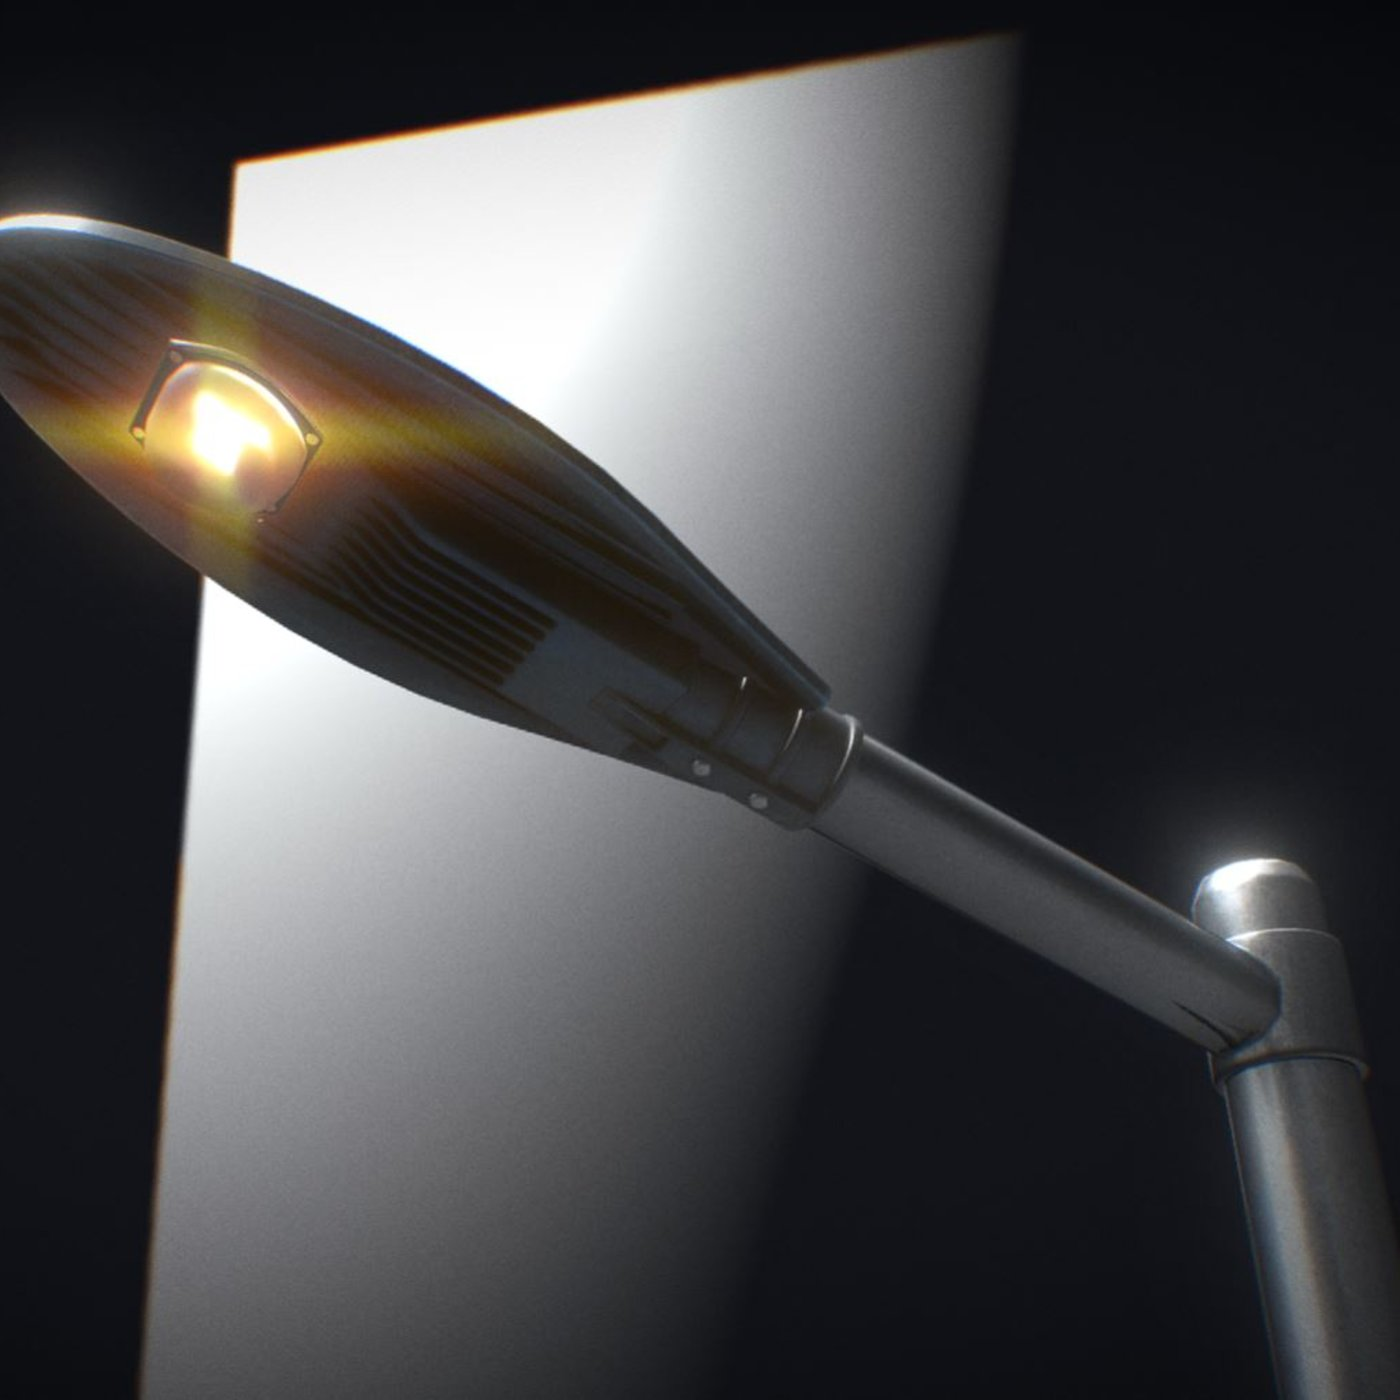 Sci-Fi Street Light 14 version 6 (5m) with pole 3 Blender-2.90.1